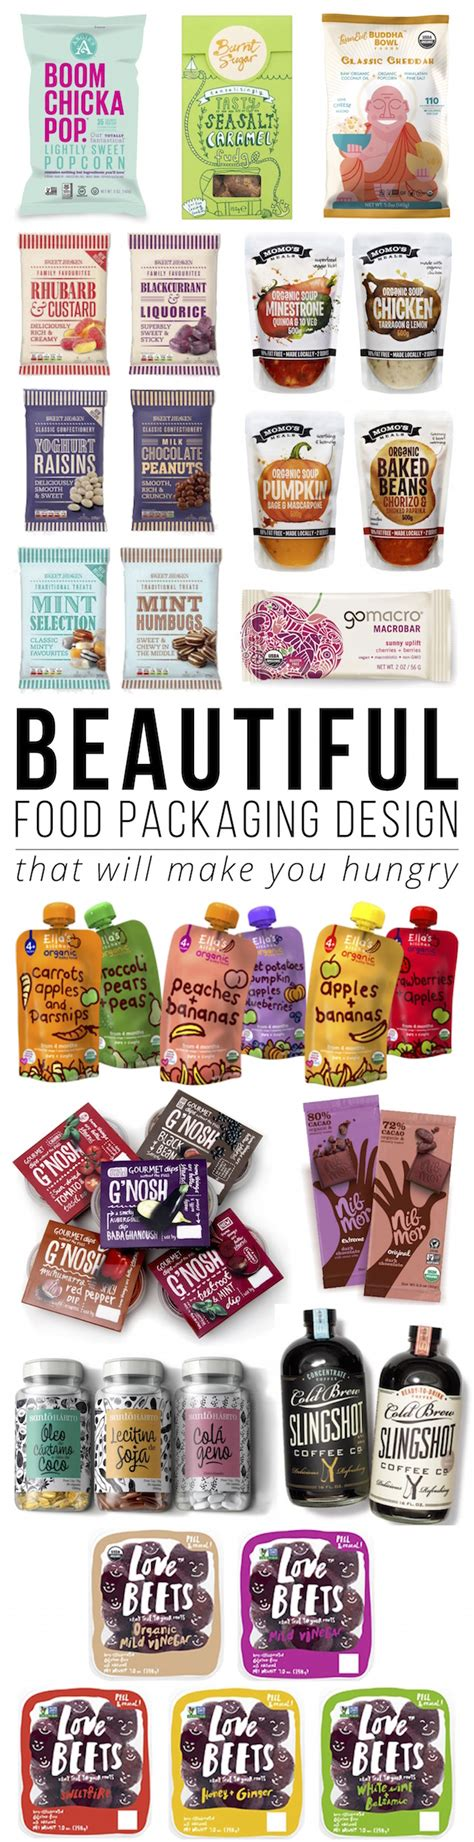 Whos Hungry For Pop Nosh Linkage by Beautiful Food Packaging Design That Will Make You Hungry